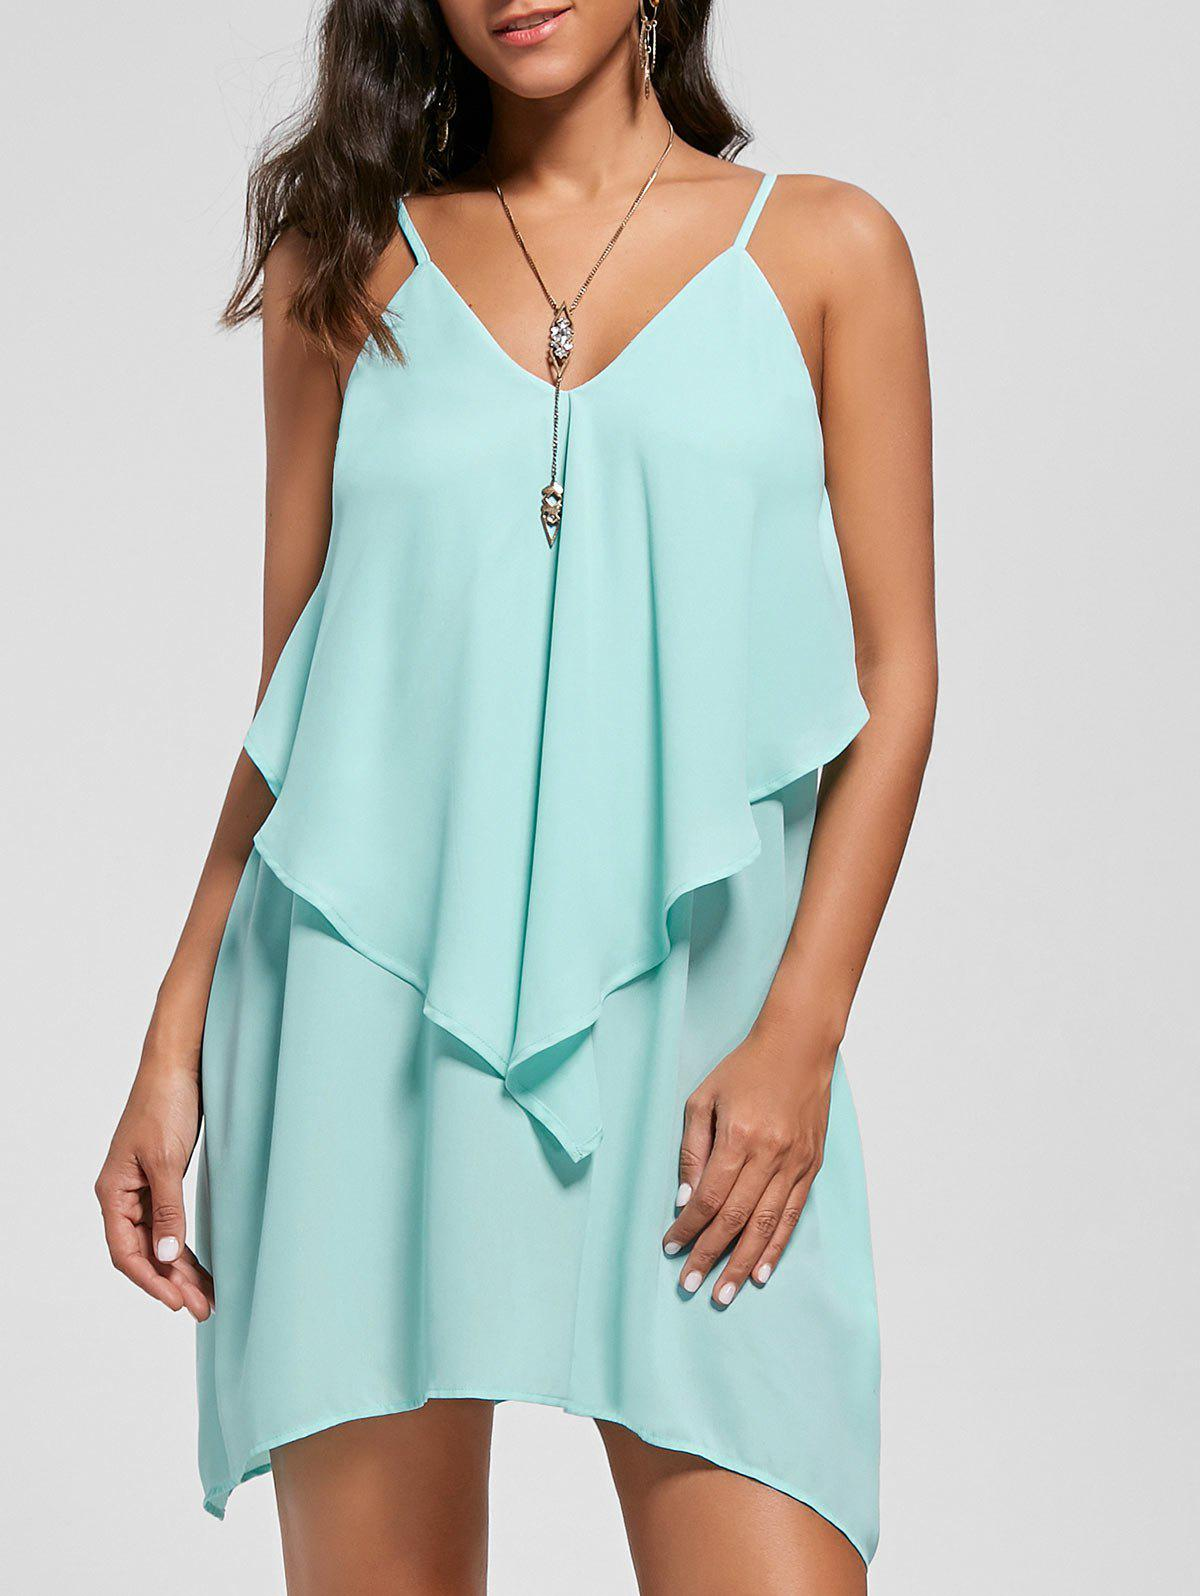 Overlay Flowy Mini Cami Dress - MINT L